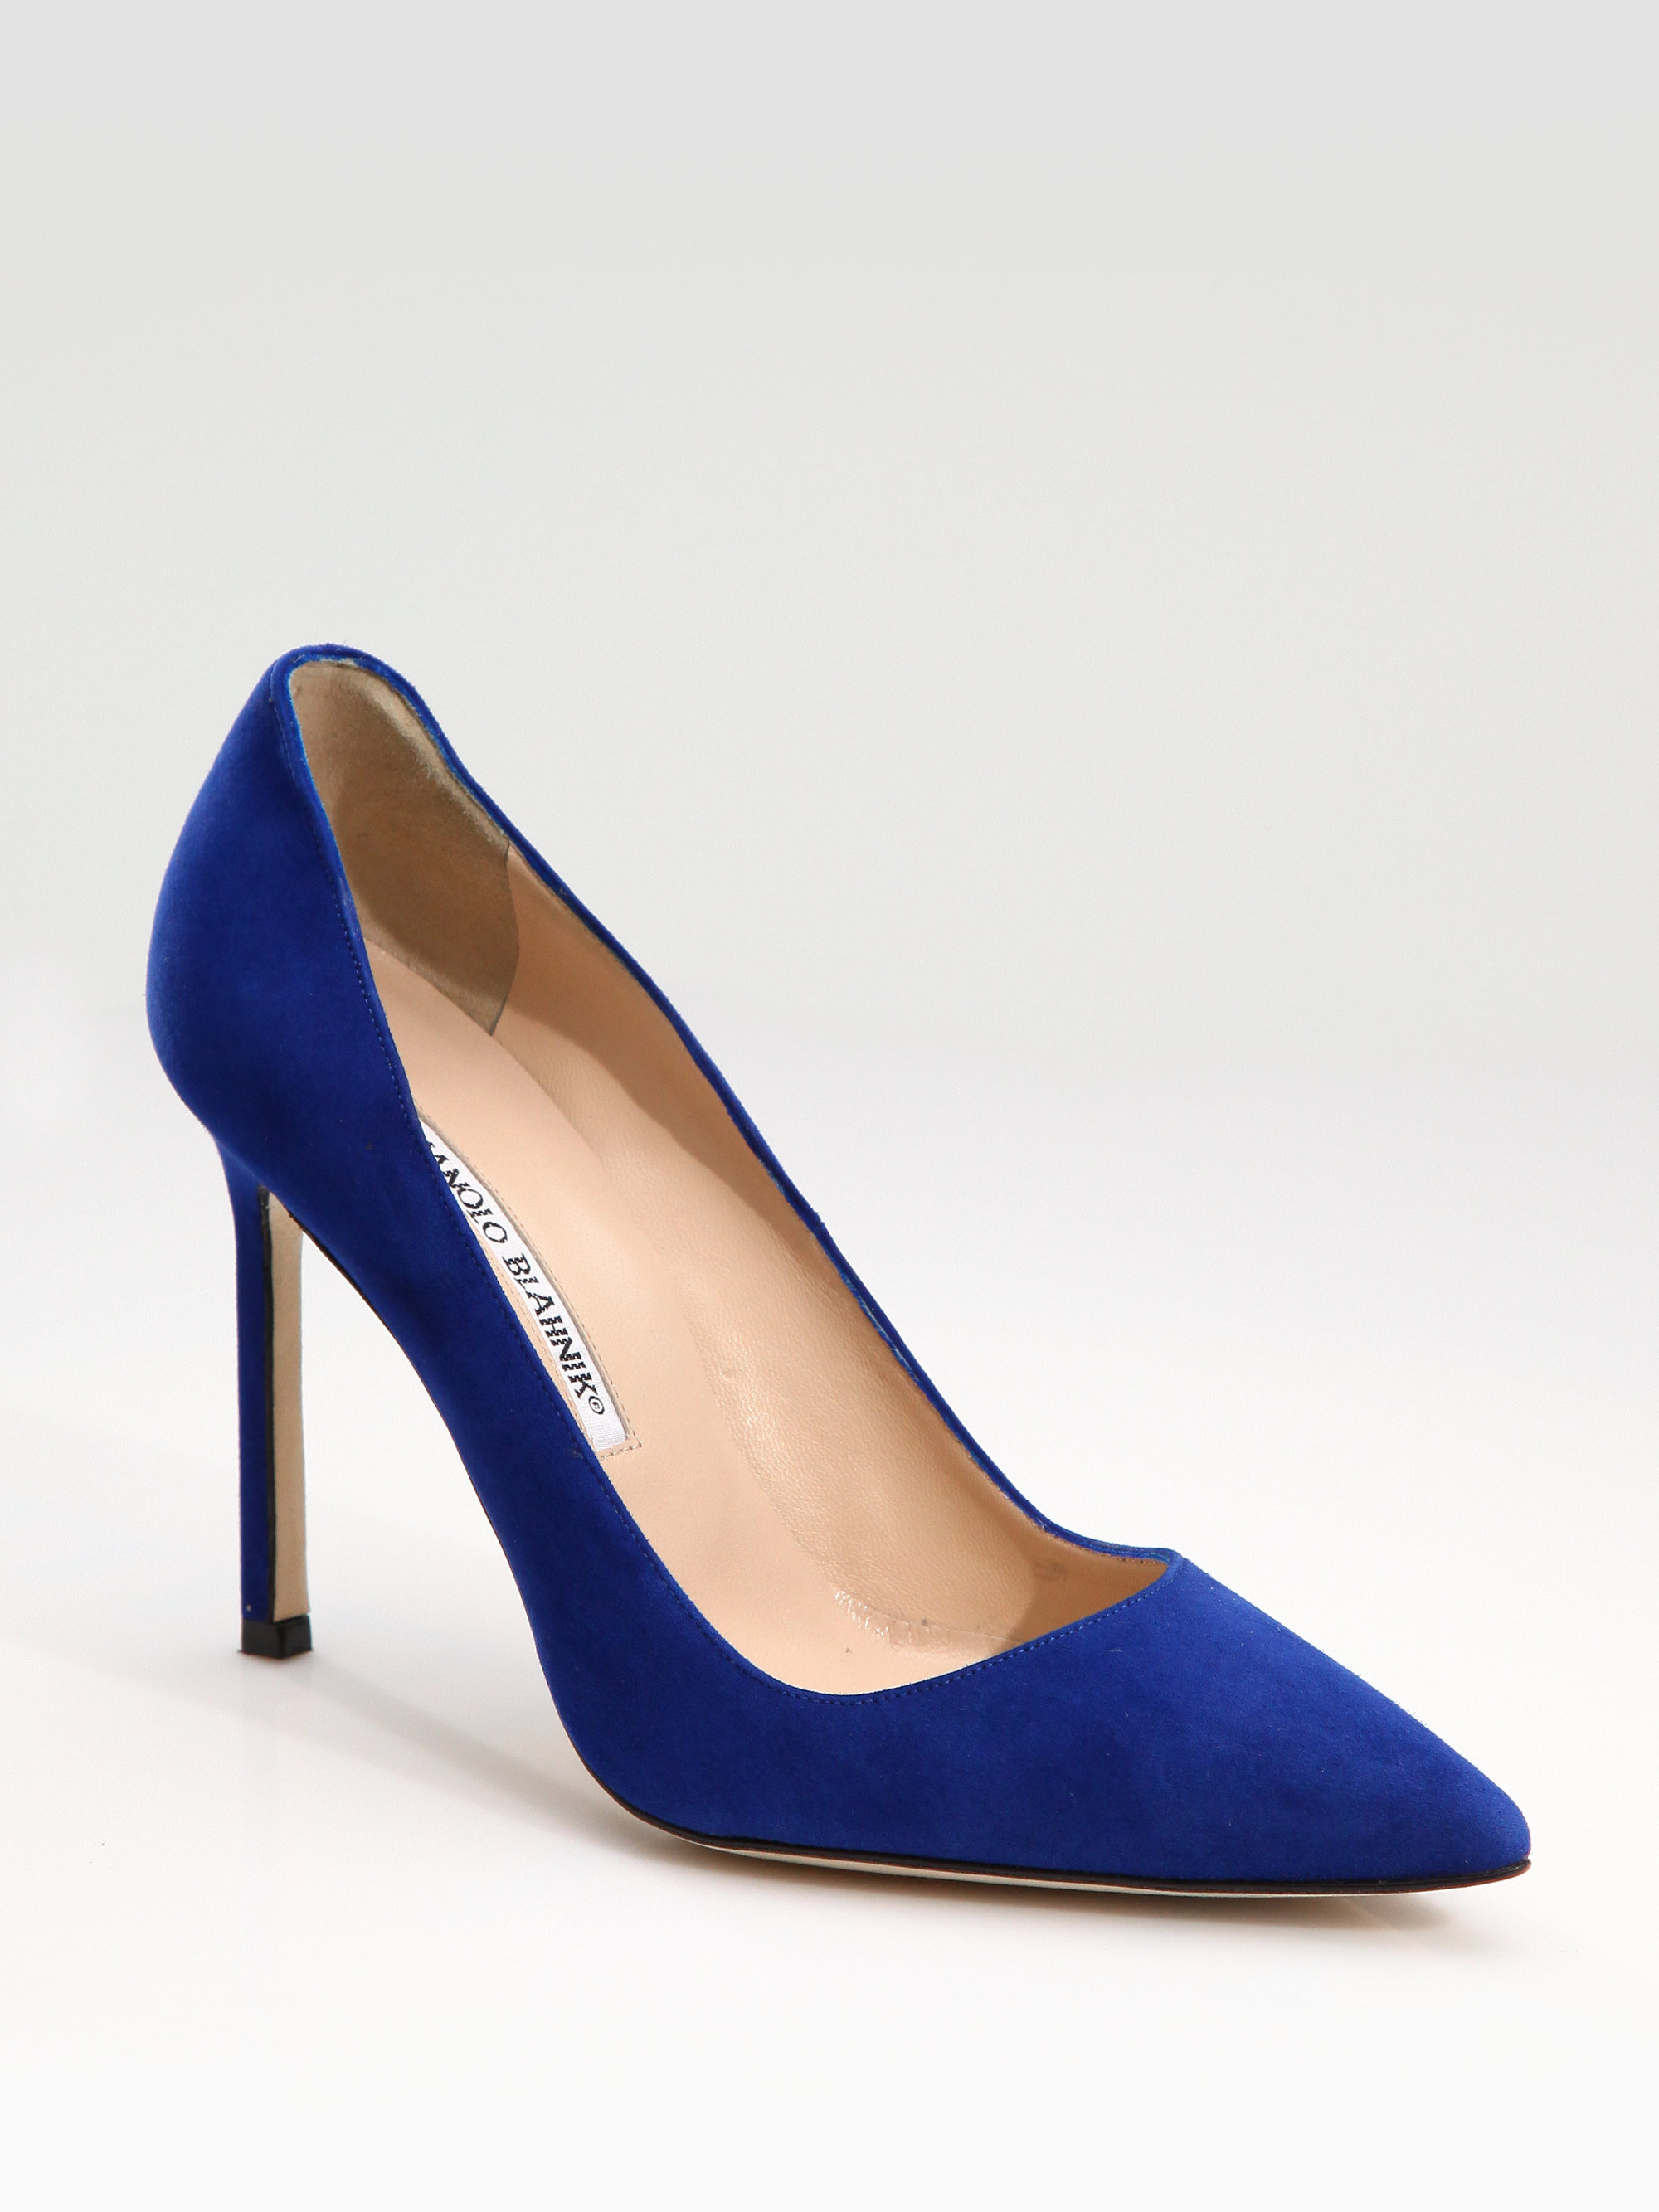 Check out the season's hottest blue suede heels. Stand out without actually standing out. Check out our what's new section for the latest styles and brands in women's shoes, like Rachel Comey Booties, Sol Sana, Rachel Zoe Booties, Maison Martin Margiela Booties, Cheap Monday Shoes, and Maison Martin Margiela Booties.